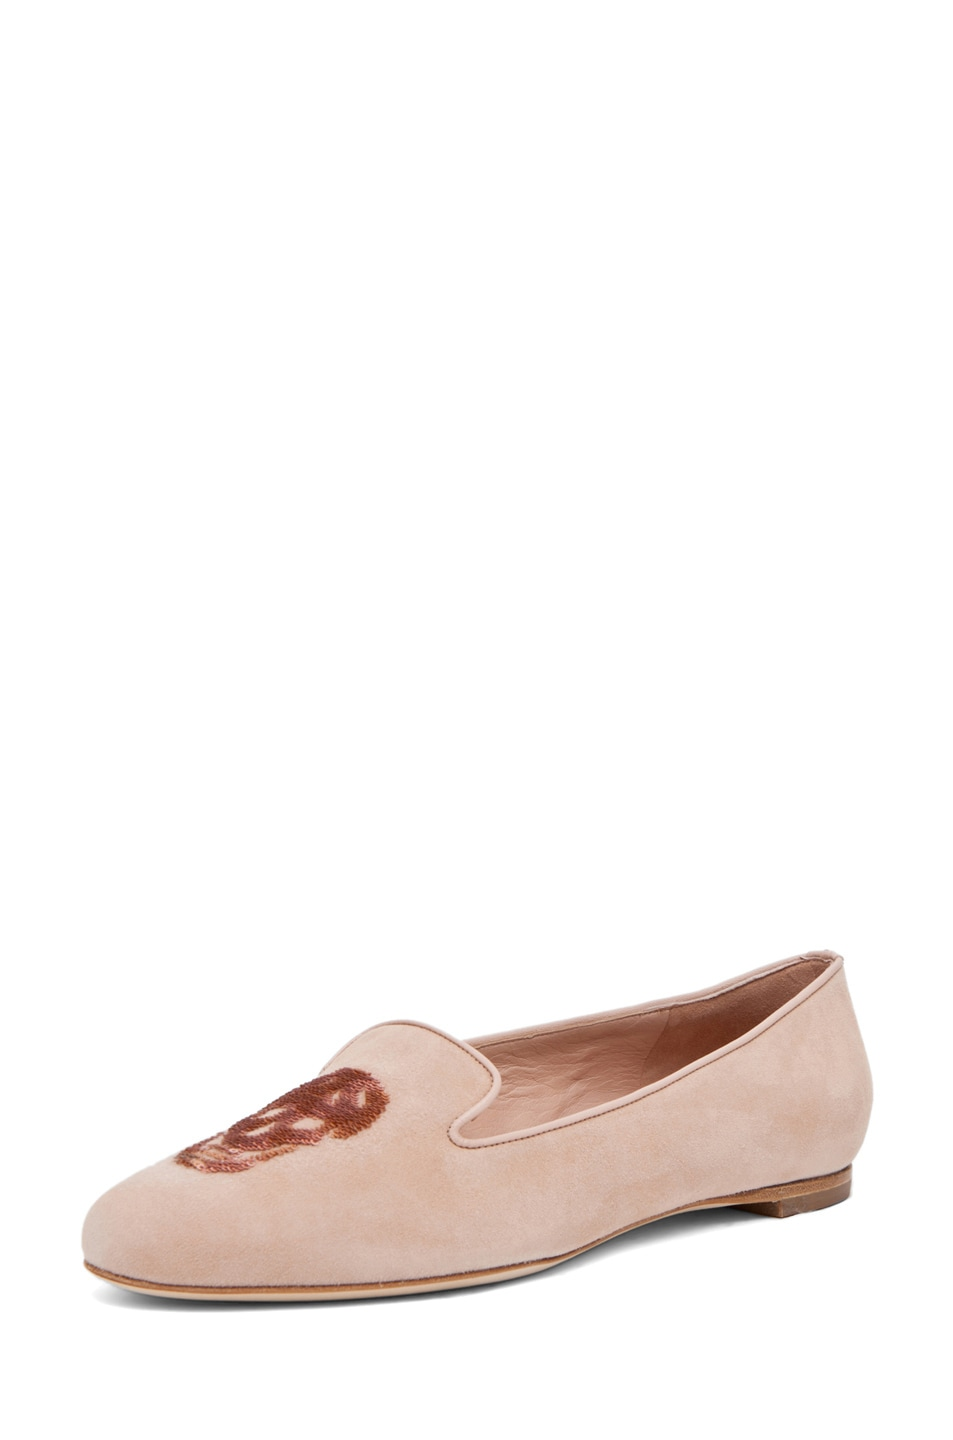 Image 2 of Alexander McQueen Skull Suede Slippers in Pale Pink & Rose